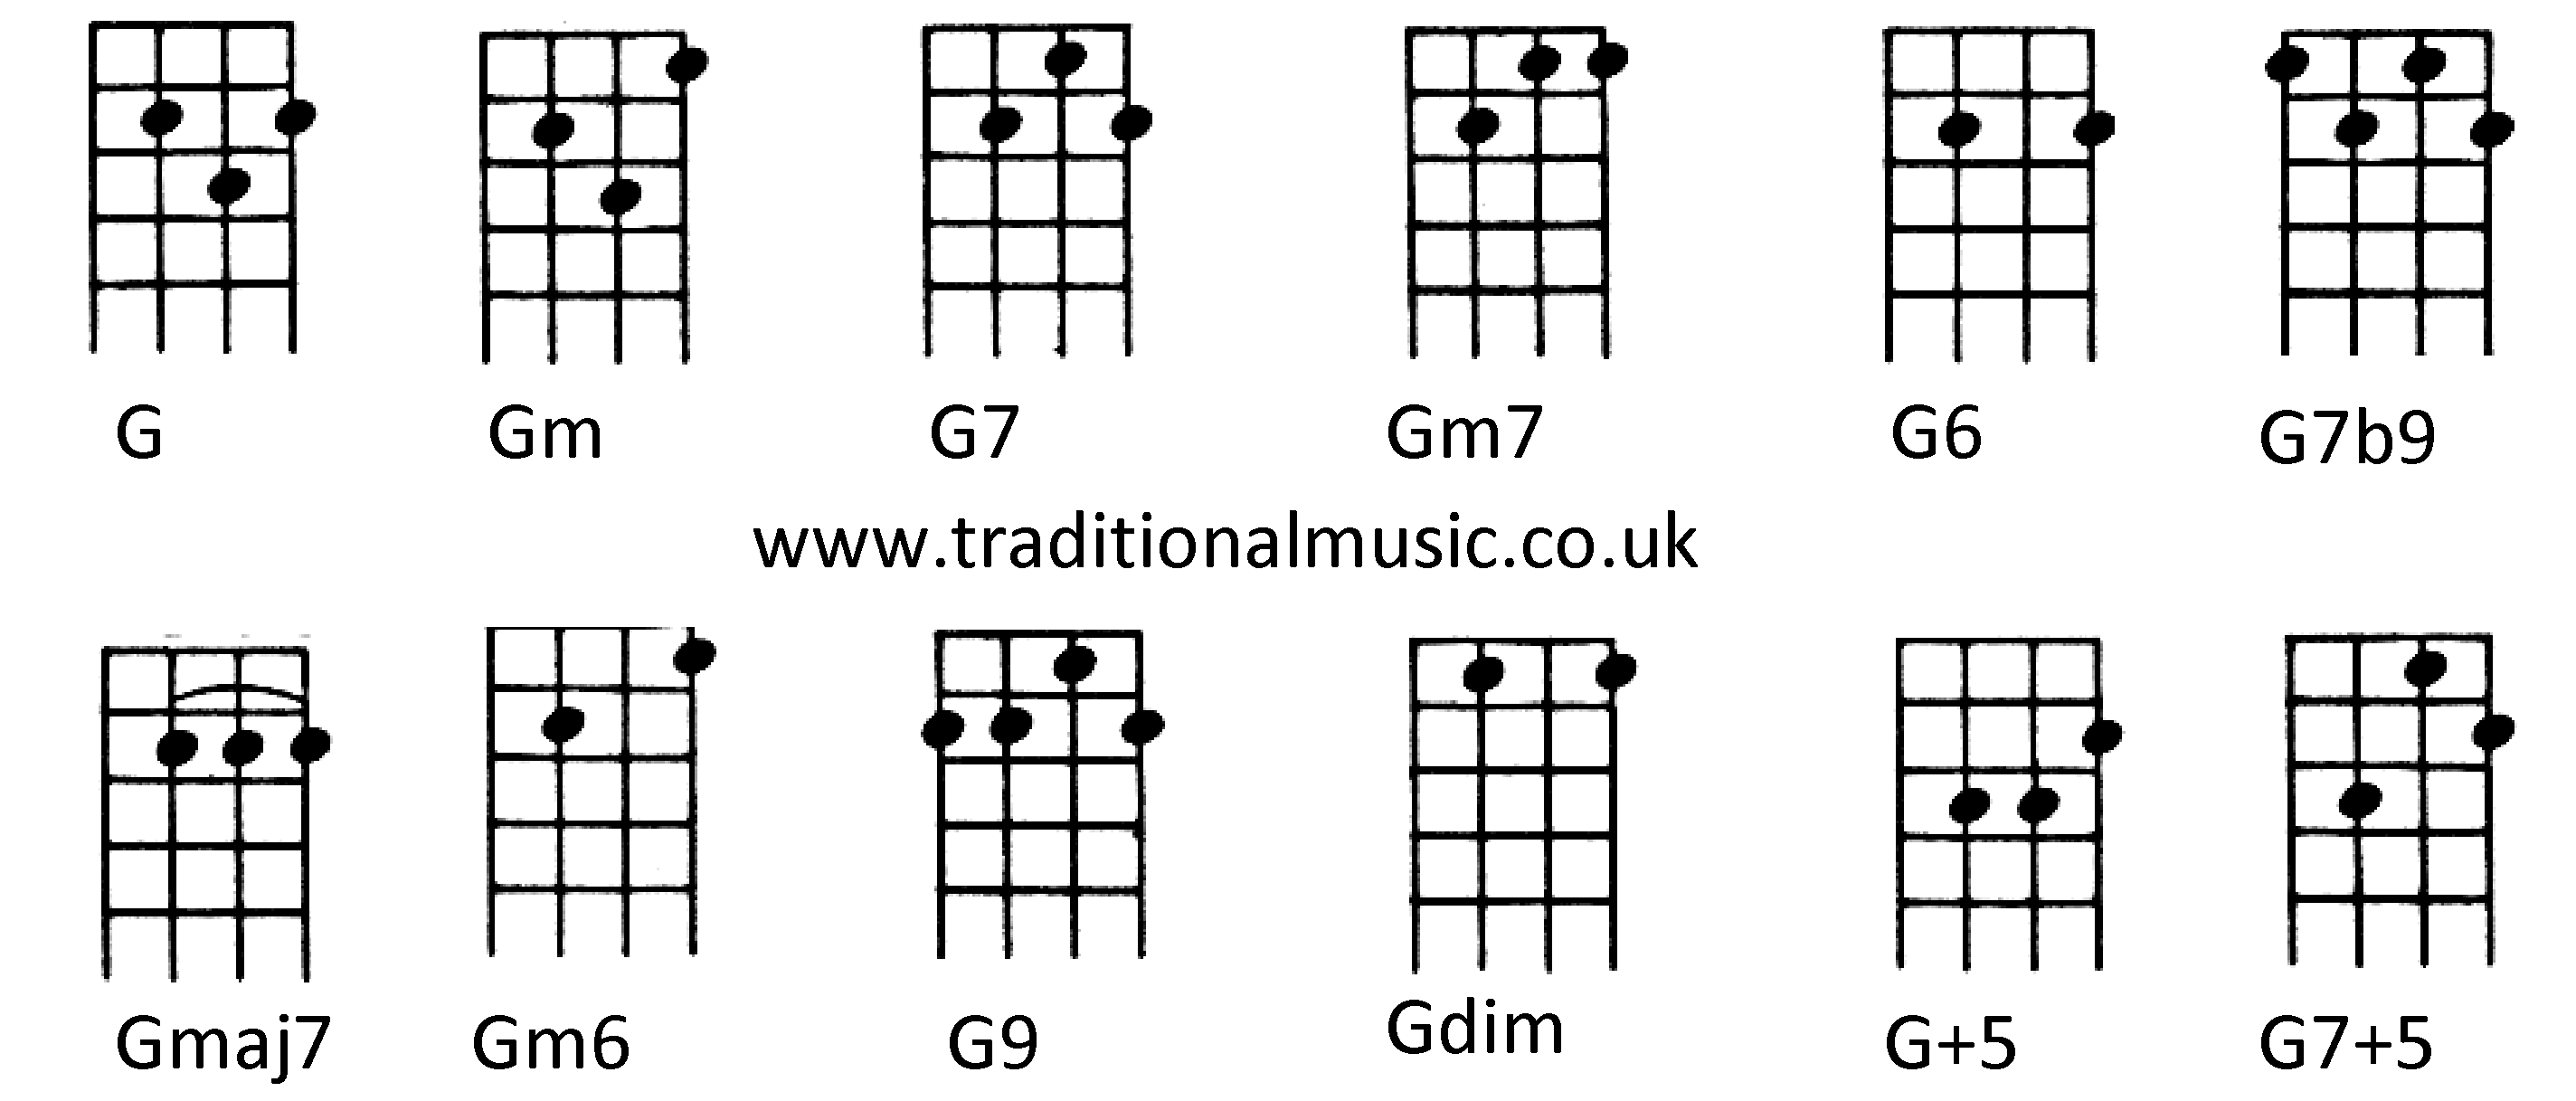 http://www.ukulele-chords.com/img/chord/photo/Cmajor_132.jpg